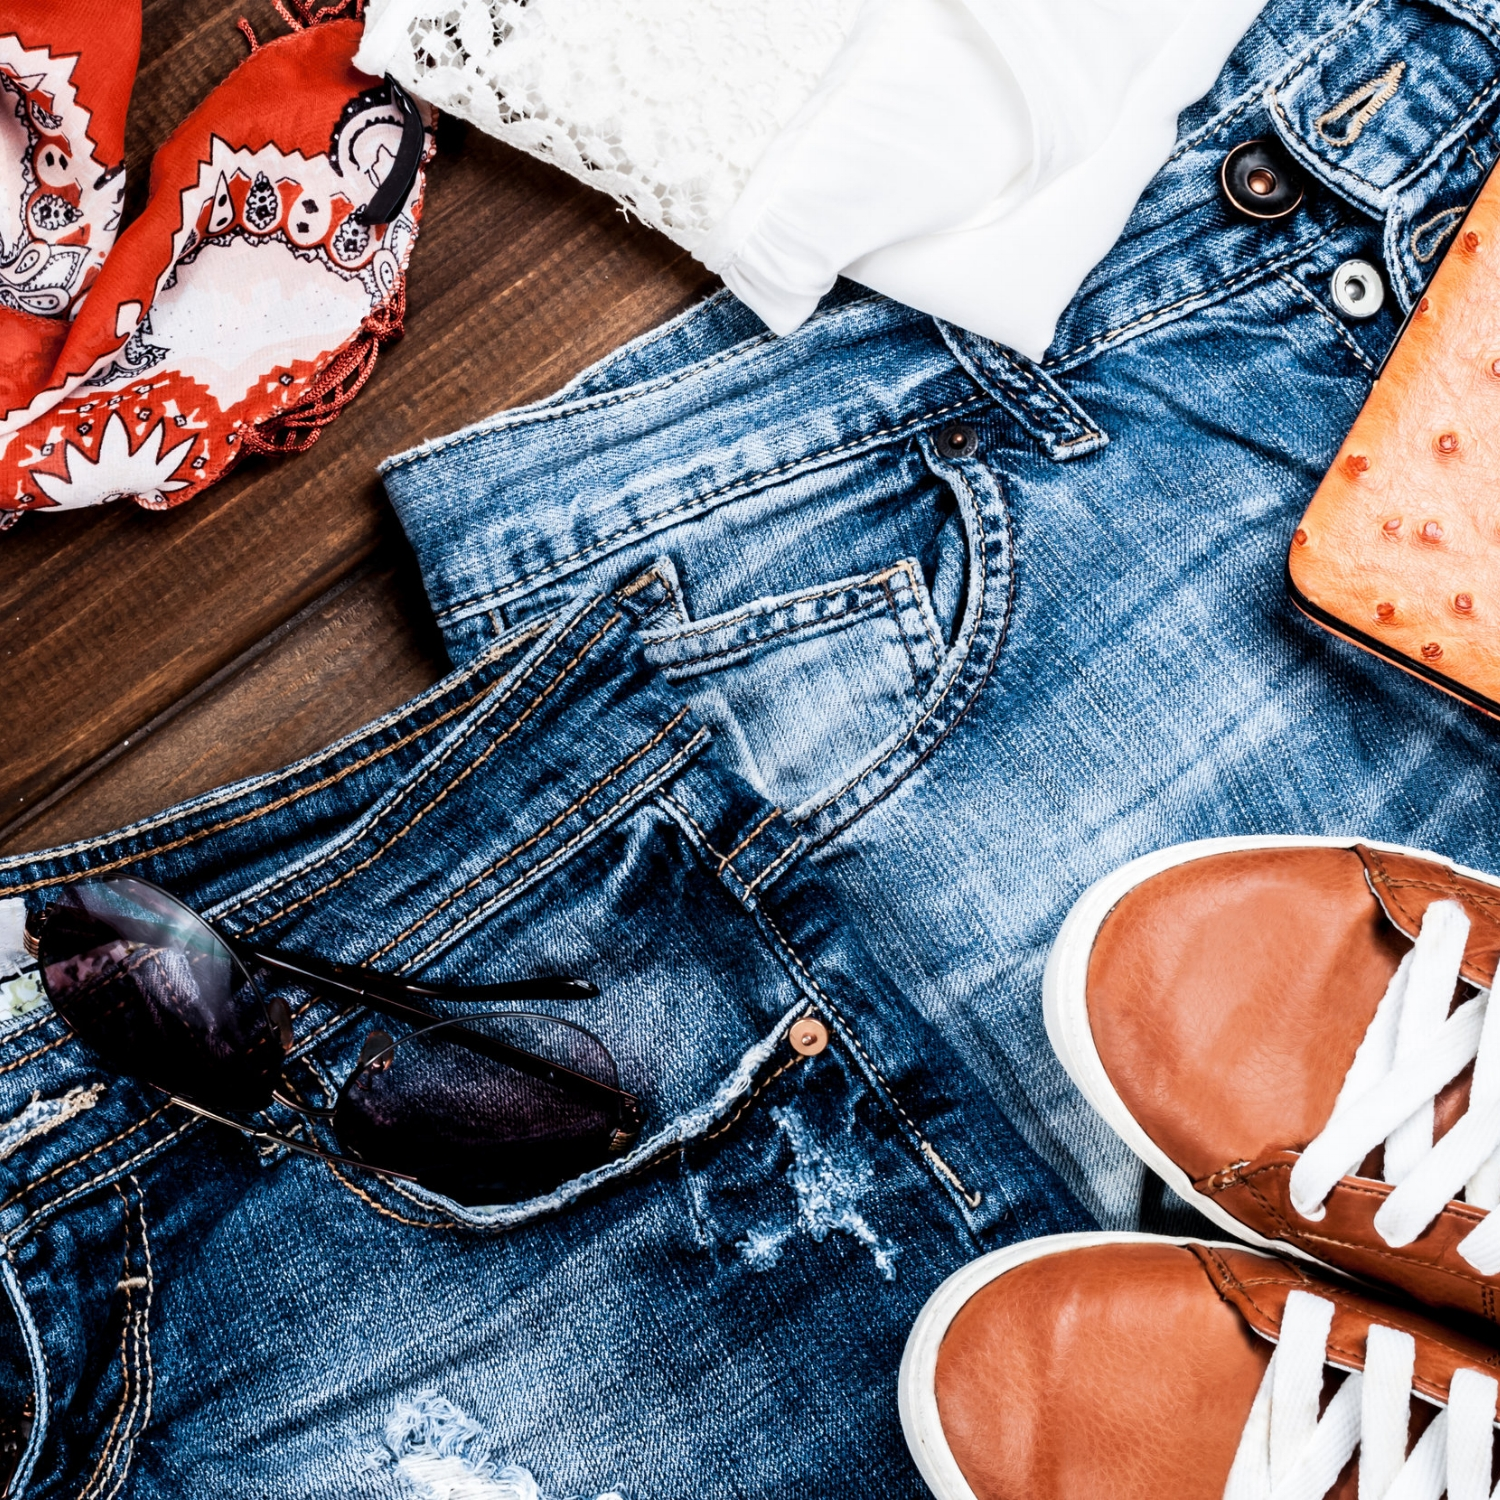 jeans-and-accessories-on-wooden-boards-515974712_4288x2848.jpeg